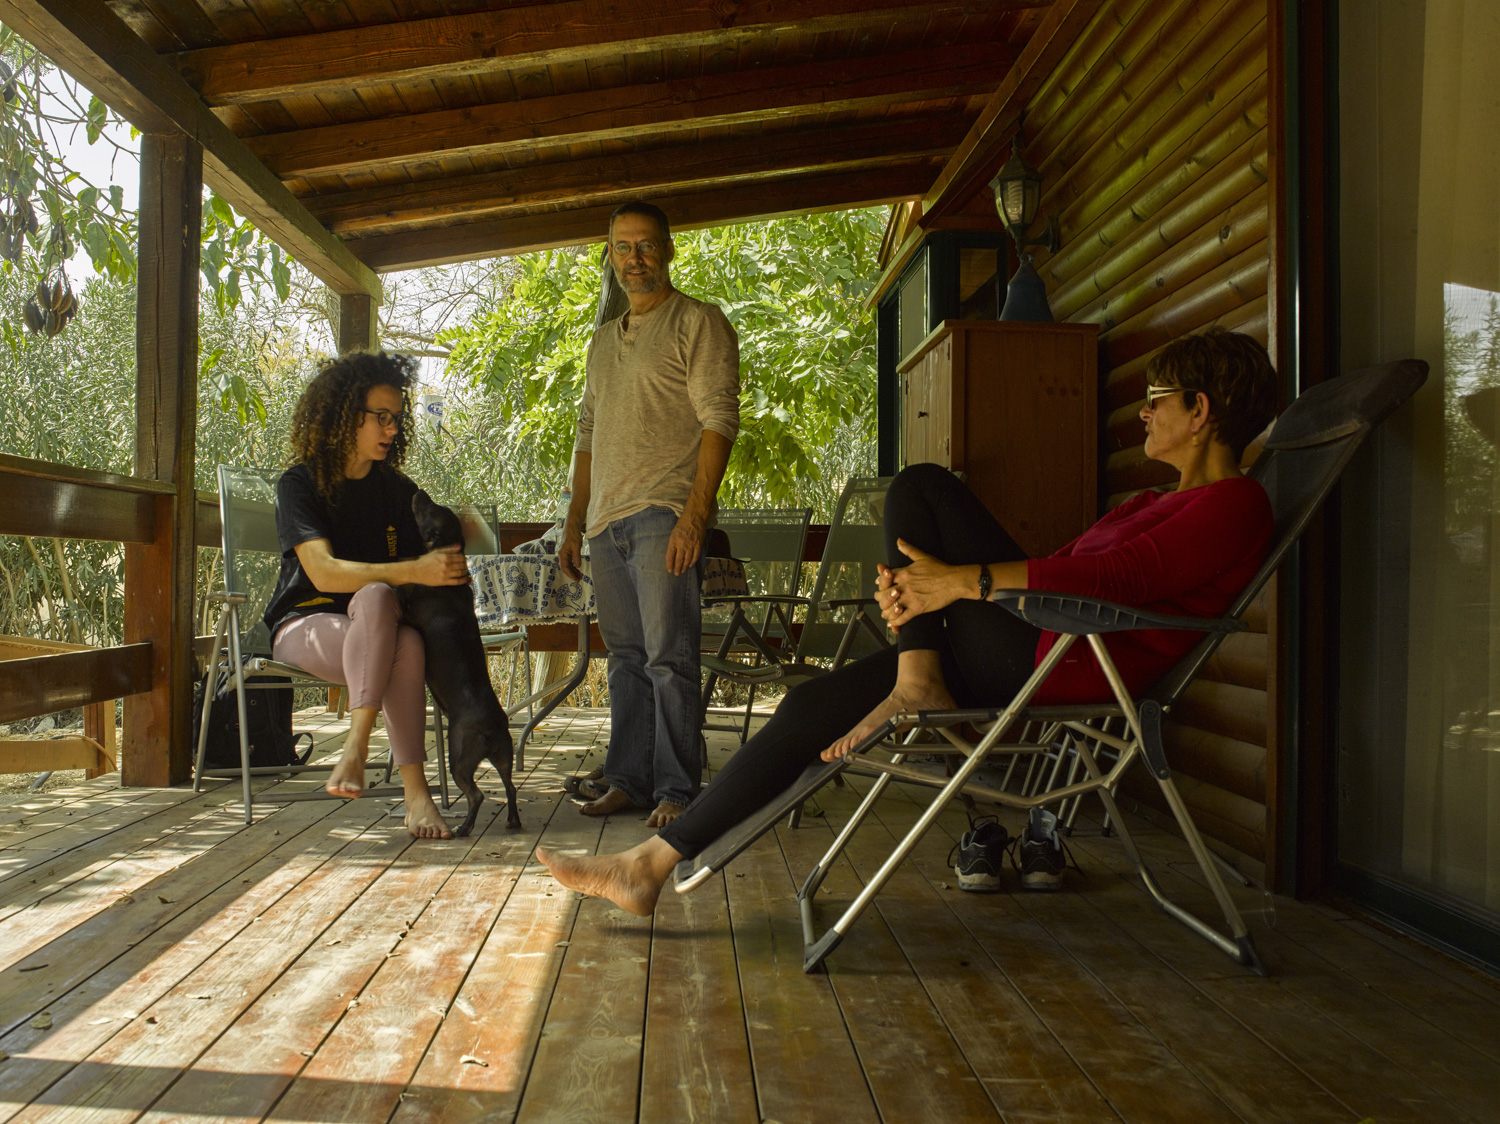 Porch - Sde Nitzan, March, 2015